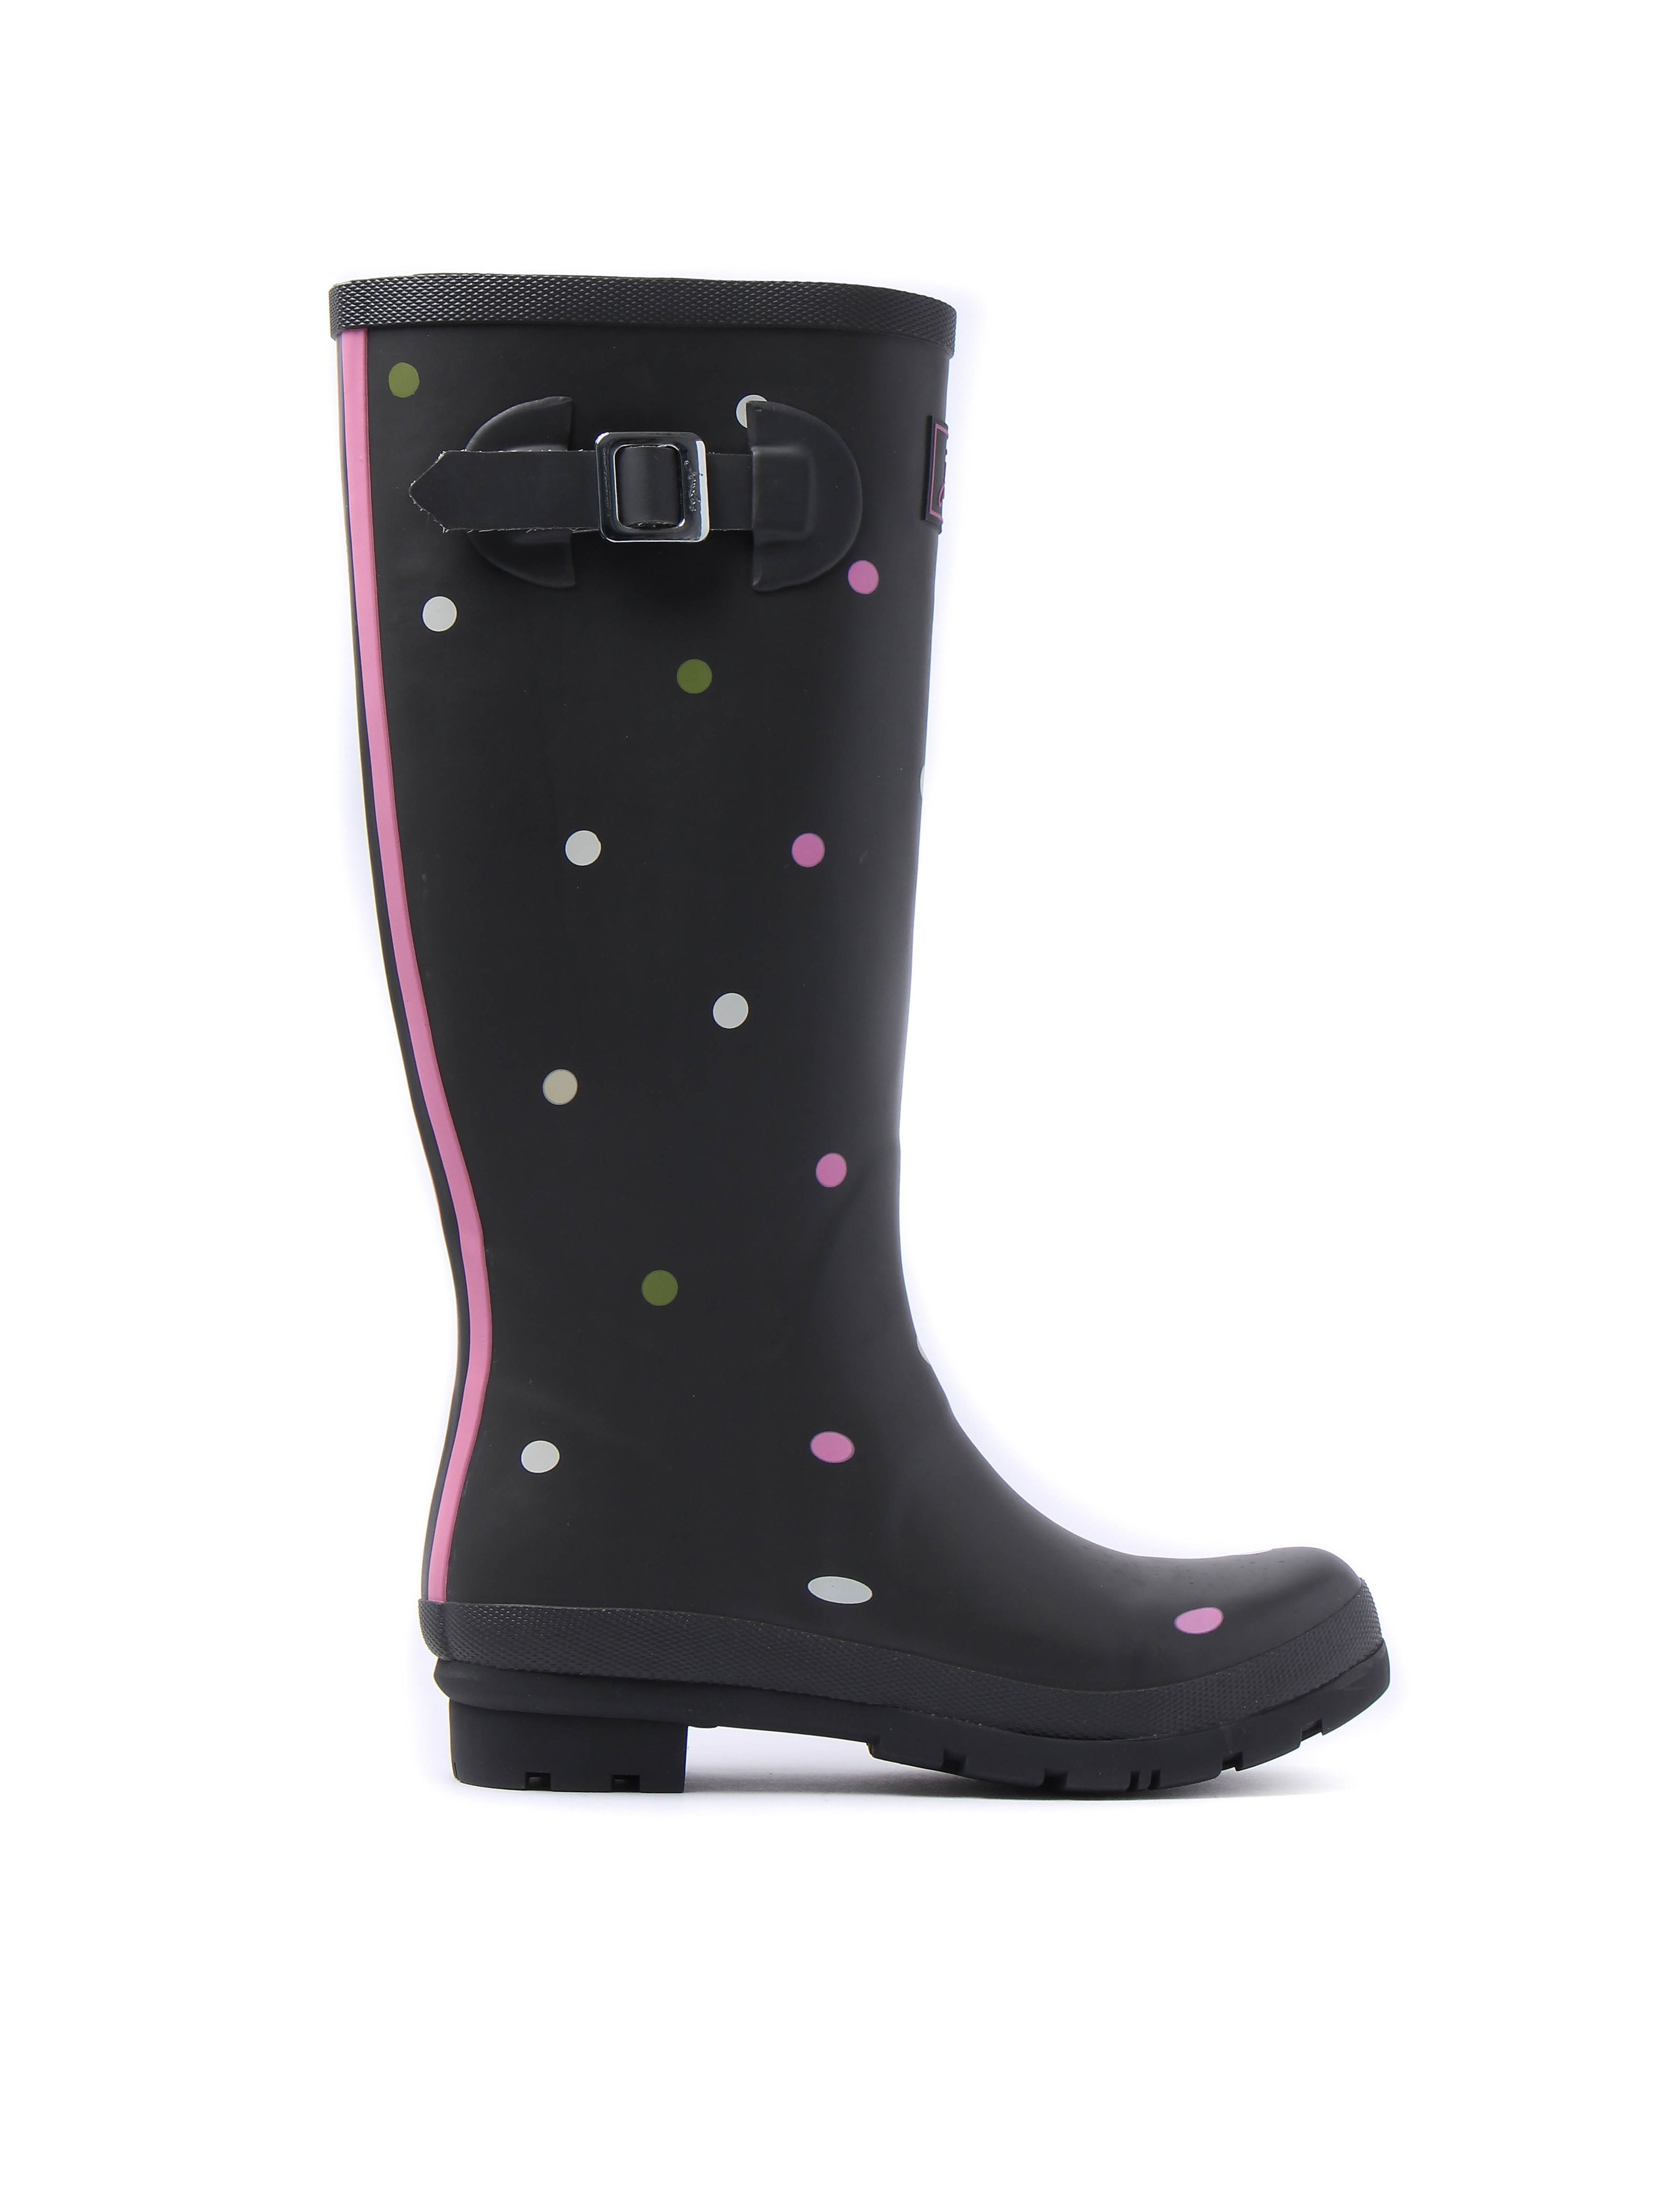 Joules Women's Wellyprint Spot Rubber  Wellington Boots - Grey Khaki